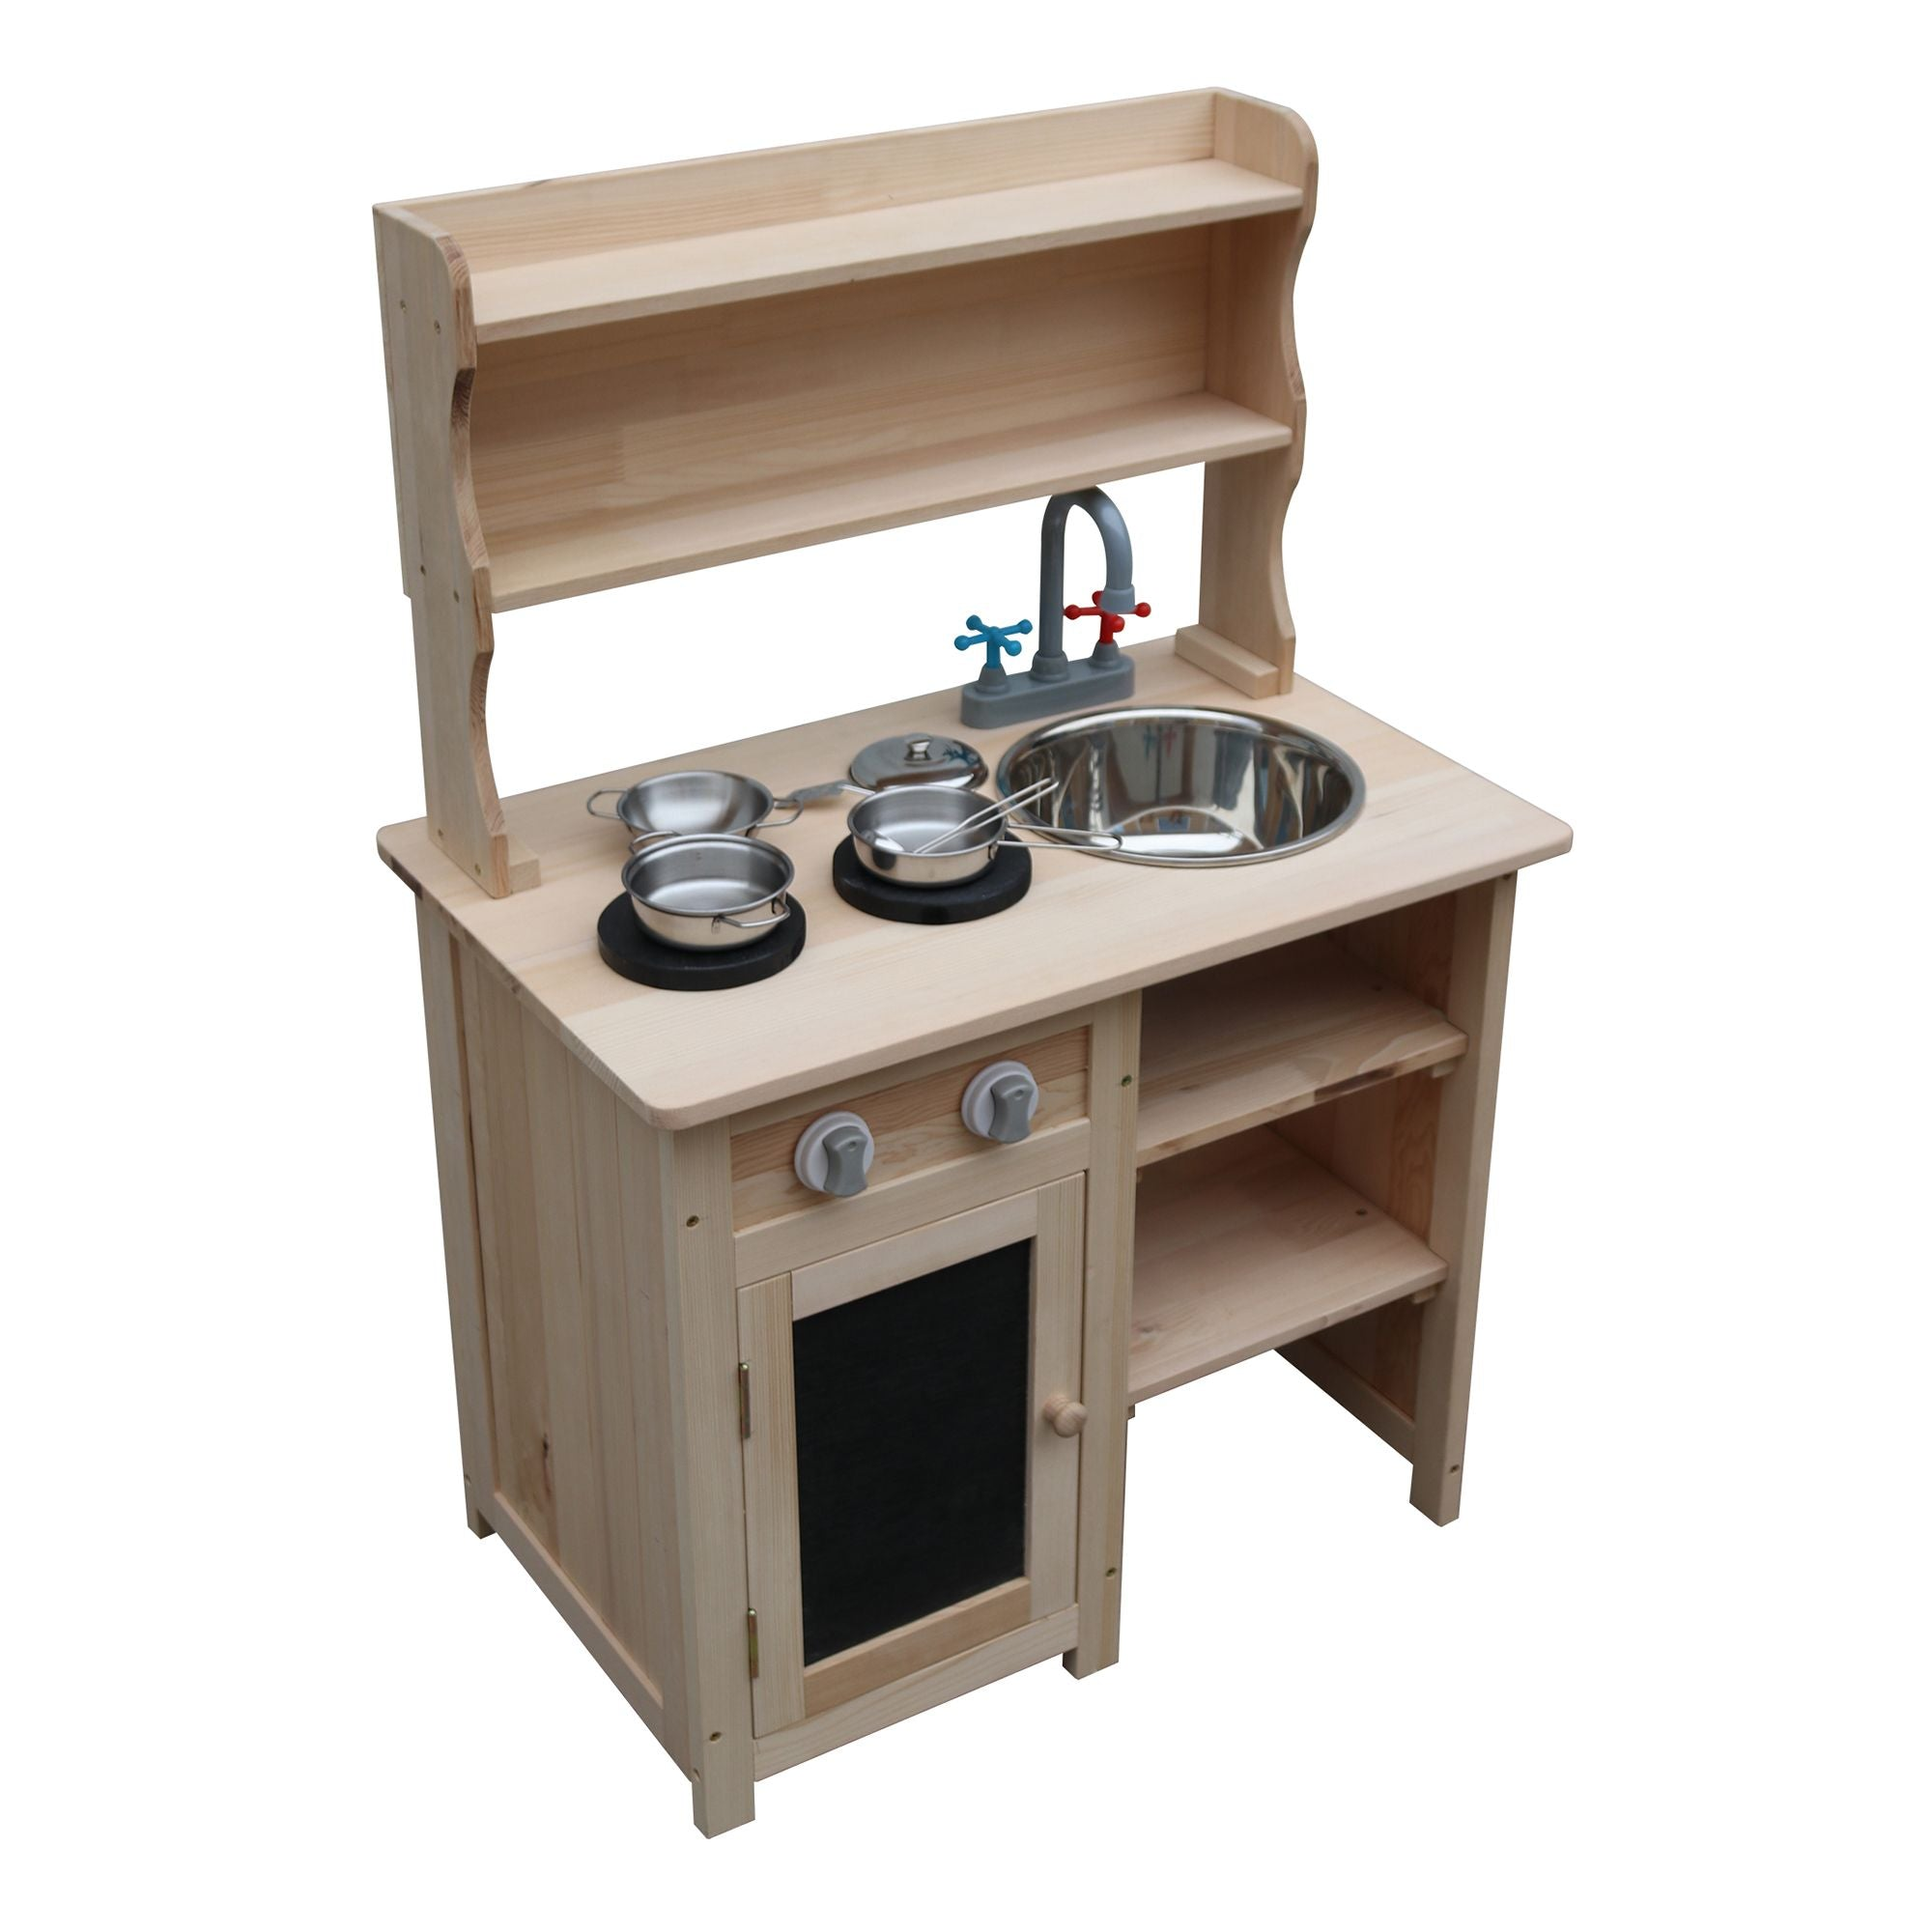 Pretend Play Mud Kitchen, Arts & Entertainment by Gifts24-7